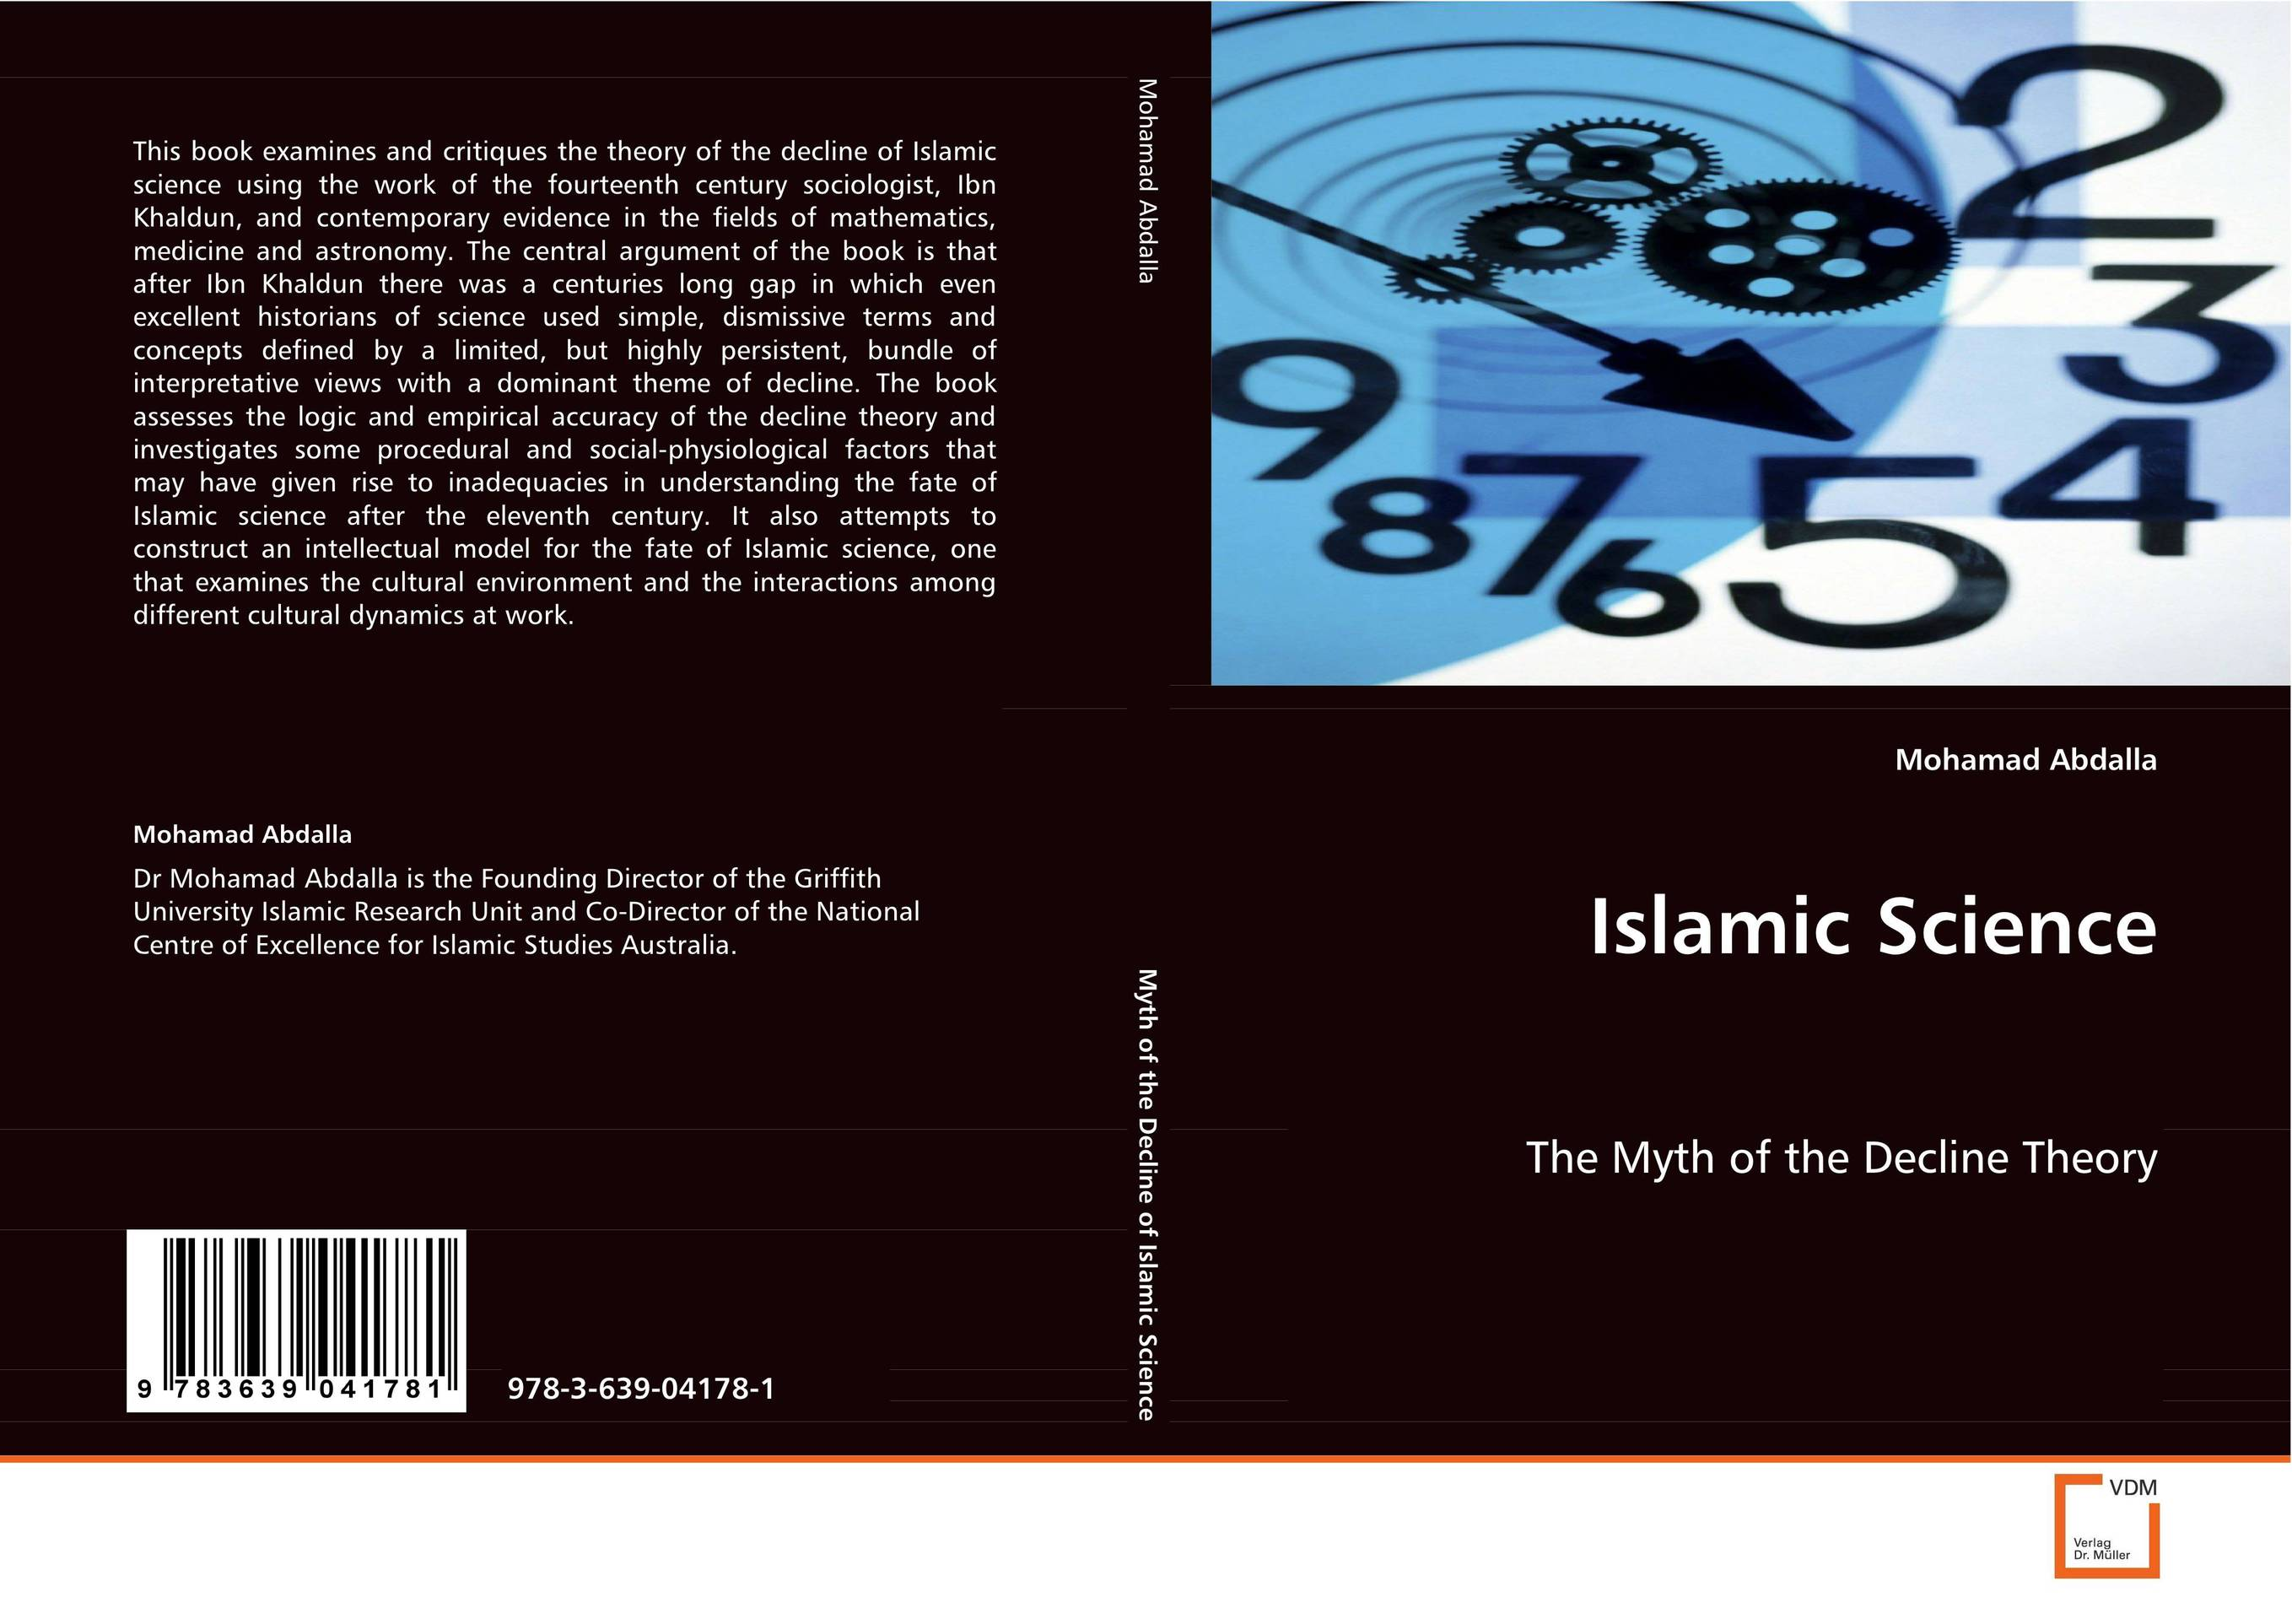 Islamic Science norman god that limps – science and technology i n the eighties